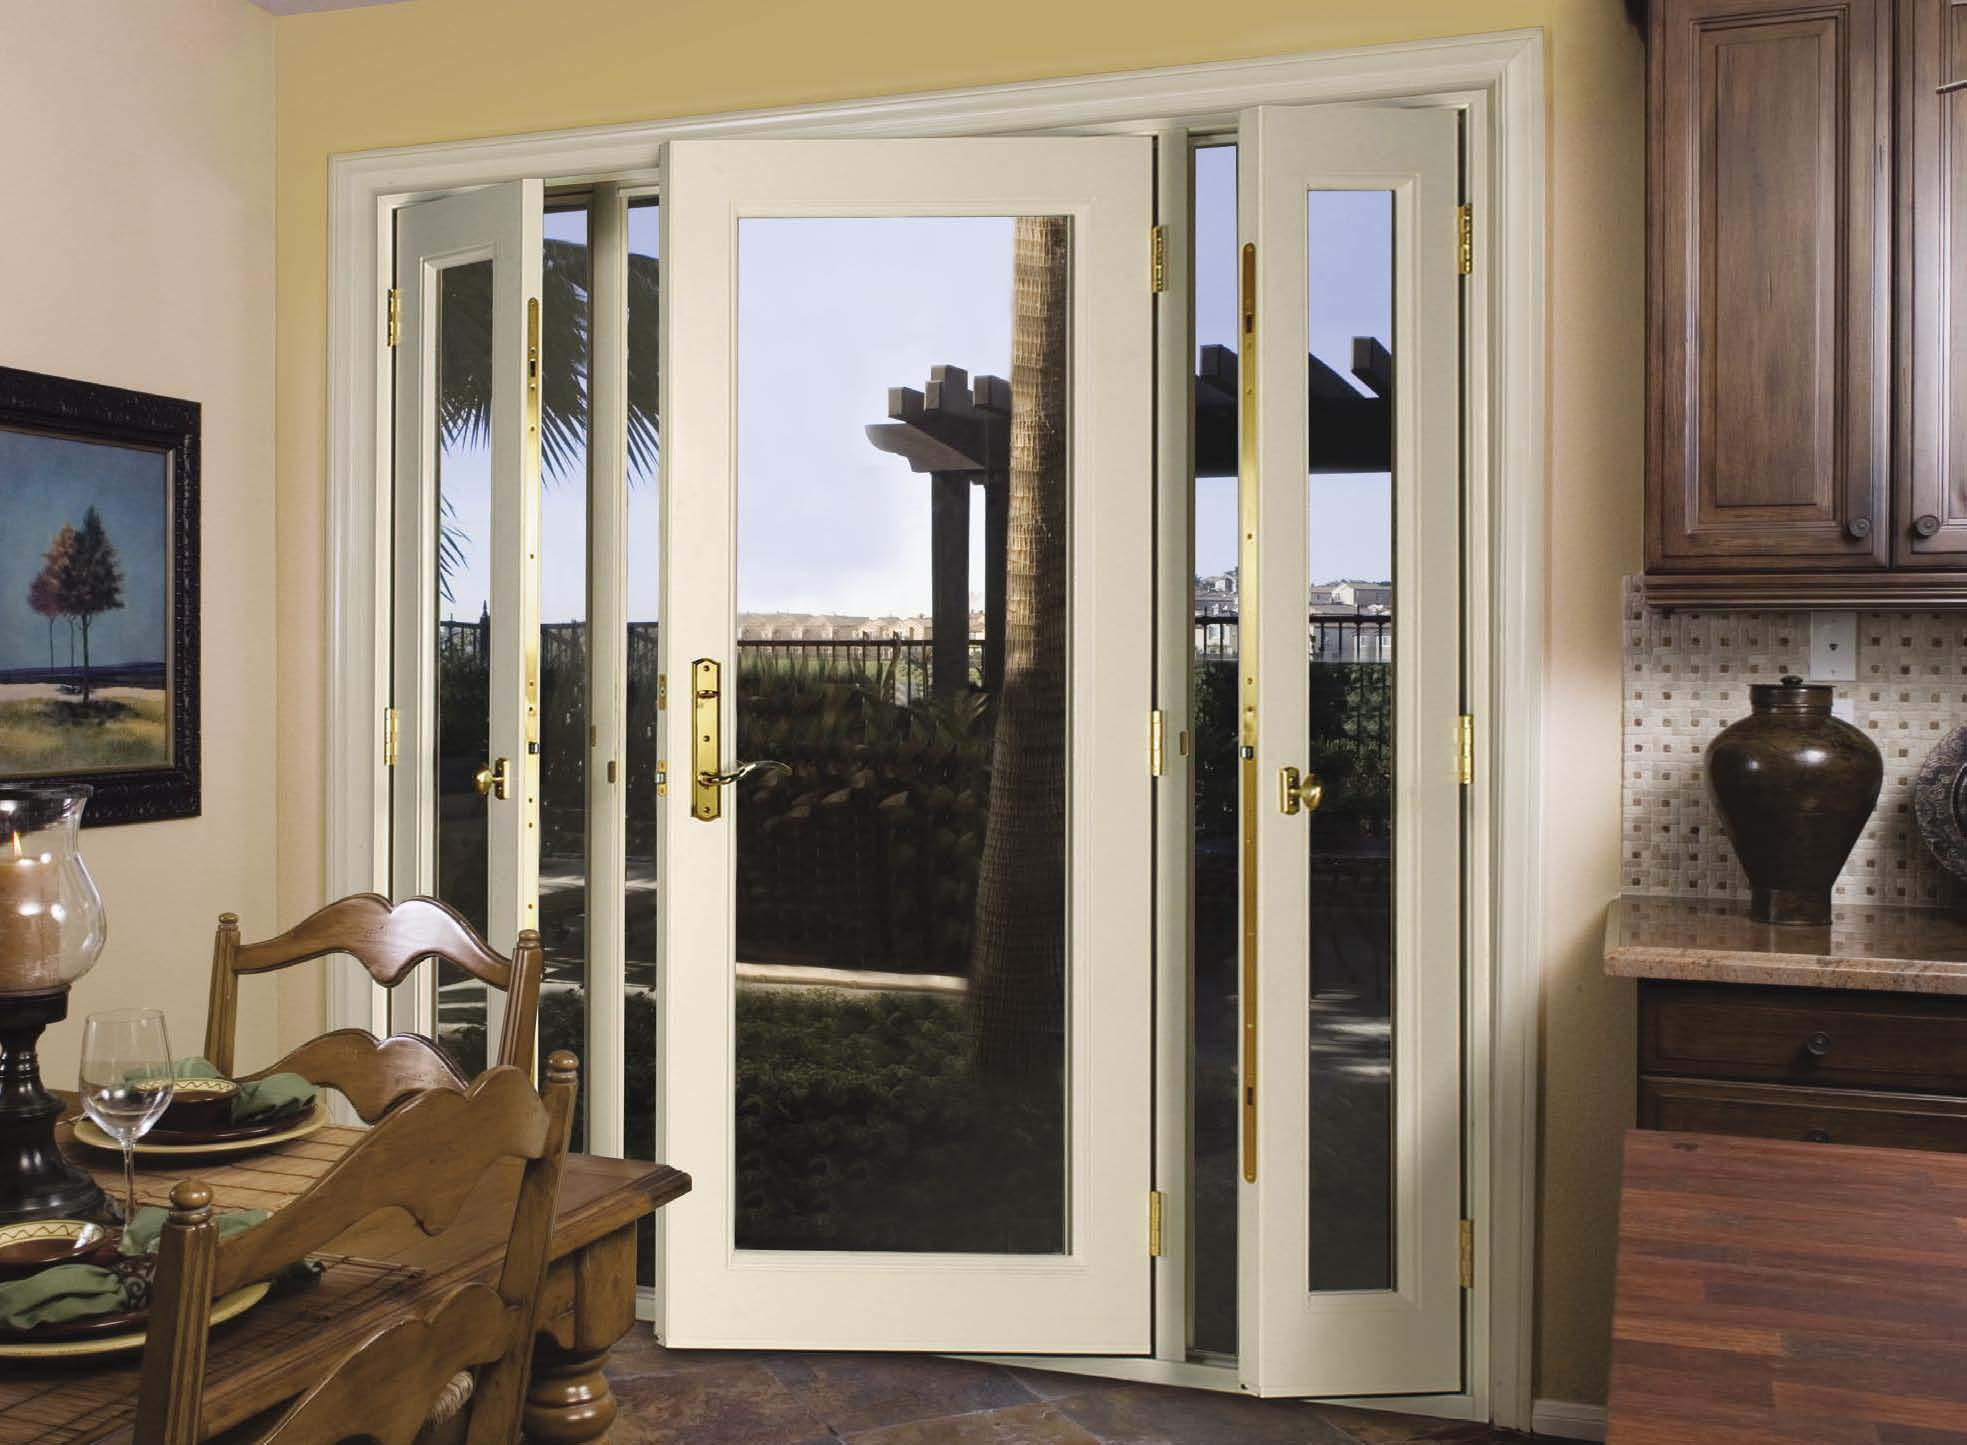 1445 #644937 Patio Doors With Sidelites Venting Sidelite Patio Door 01 wallpaper Entry Doors With Sidelites 38851967